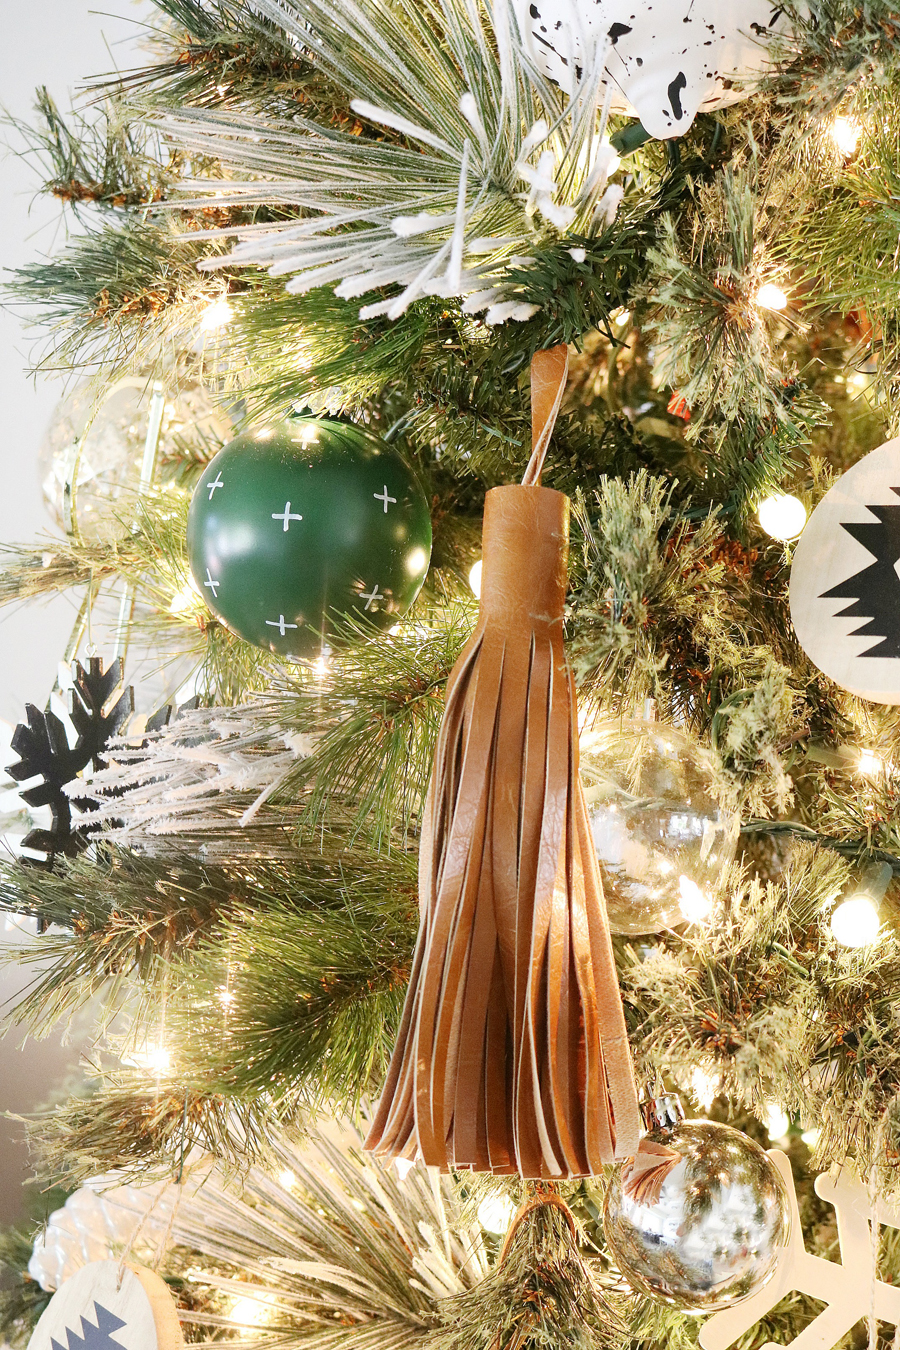 Black & White Modern Snowflake Christmas Tree Decor - Giant faux leather tassels are a great addition to tree decor.